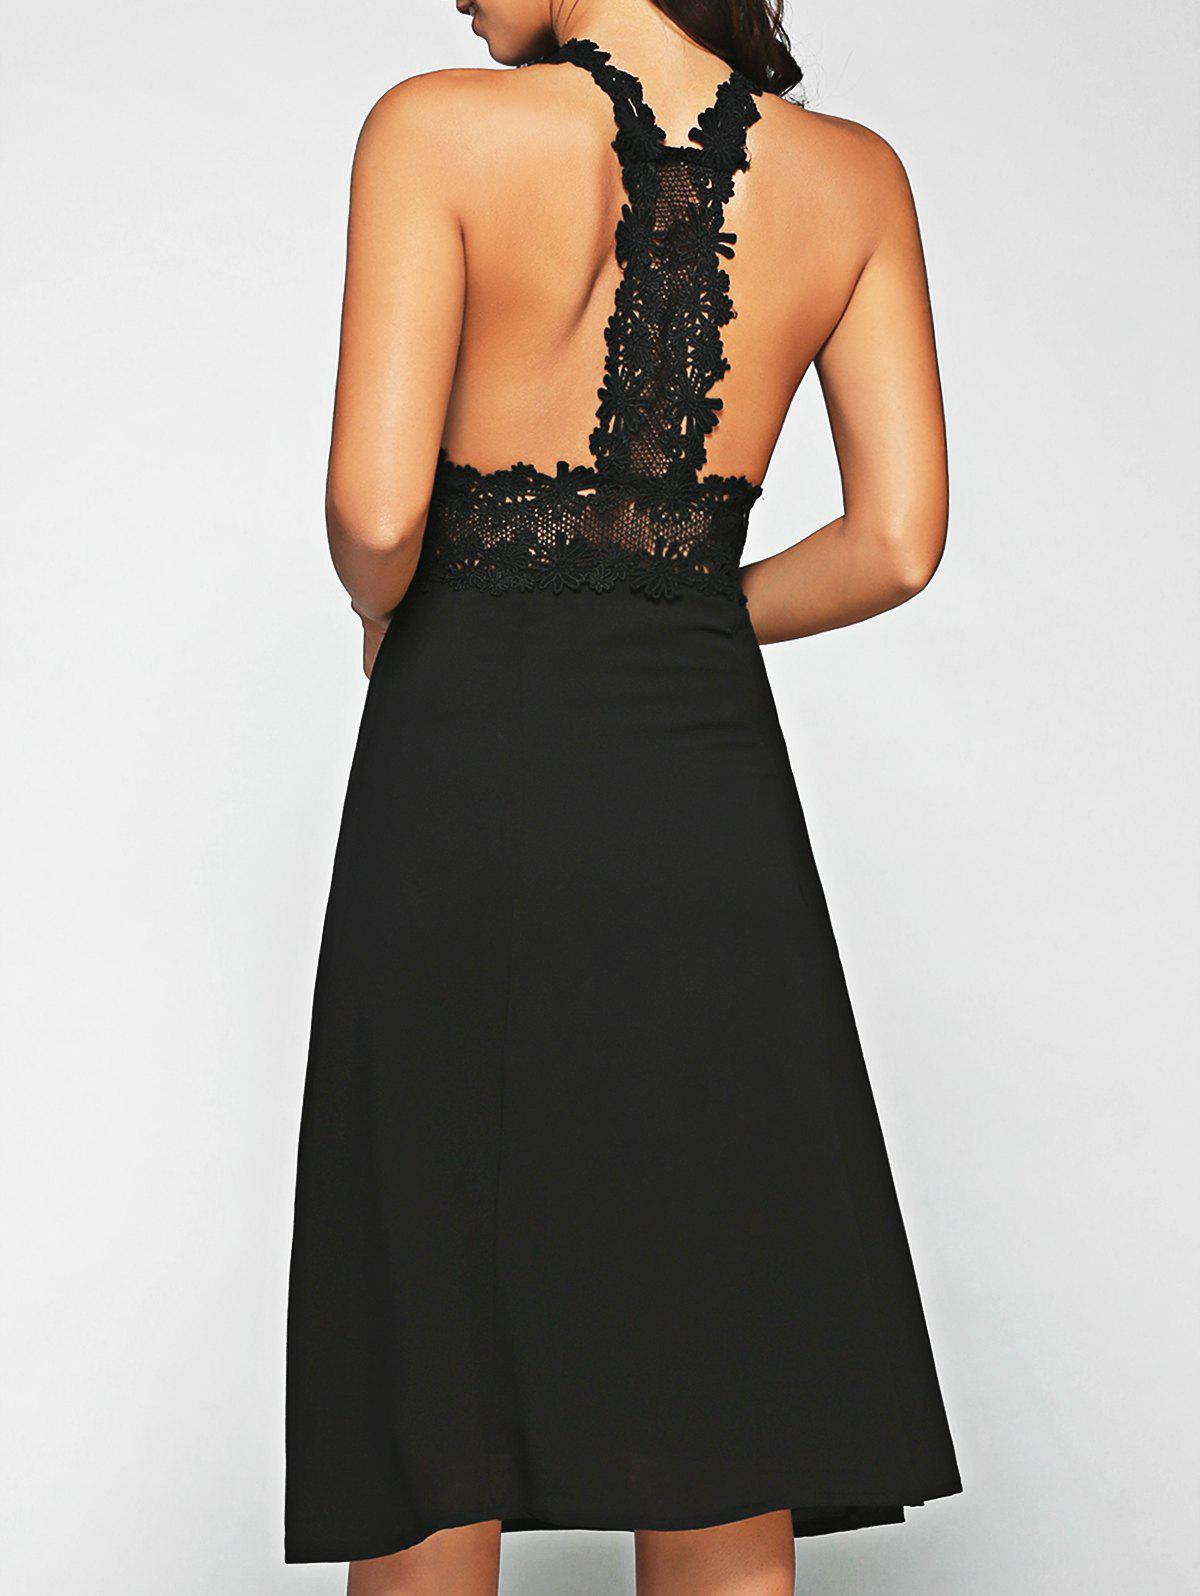 Dentelle Racerback Midi Dress - Noir XL